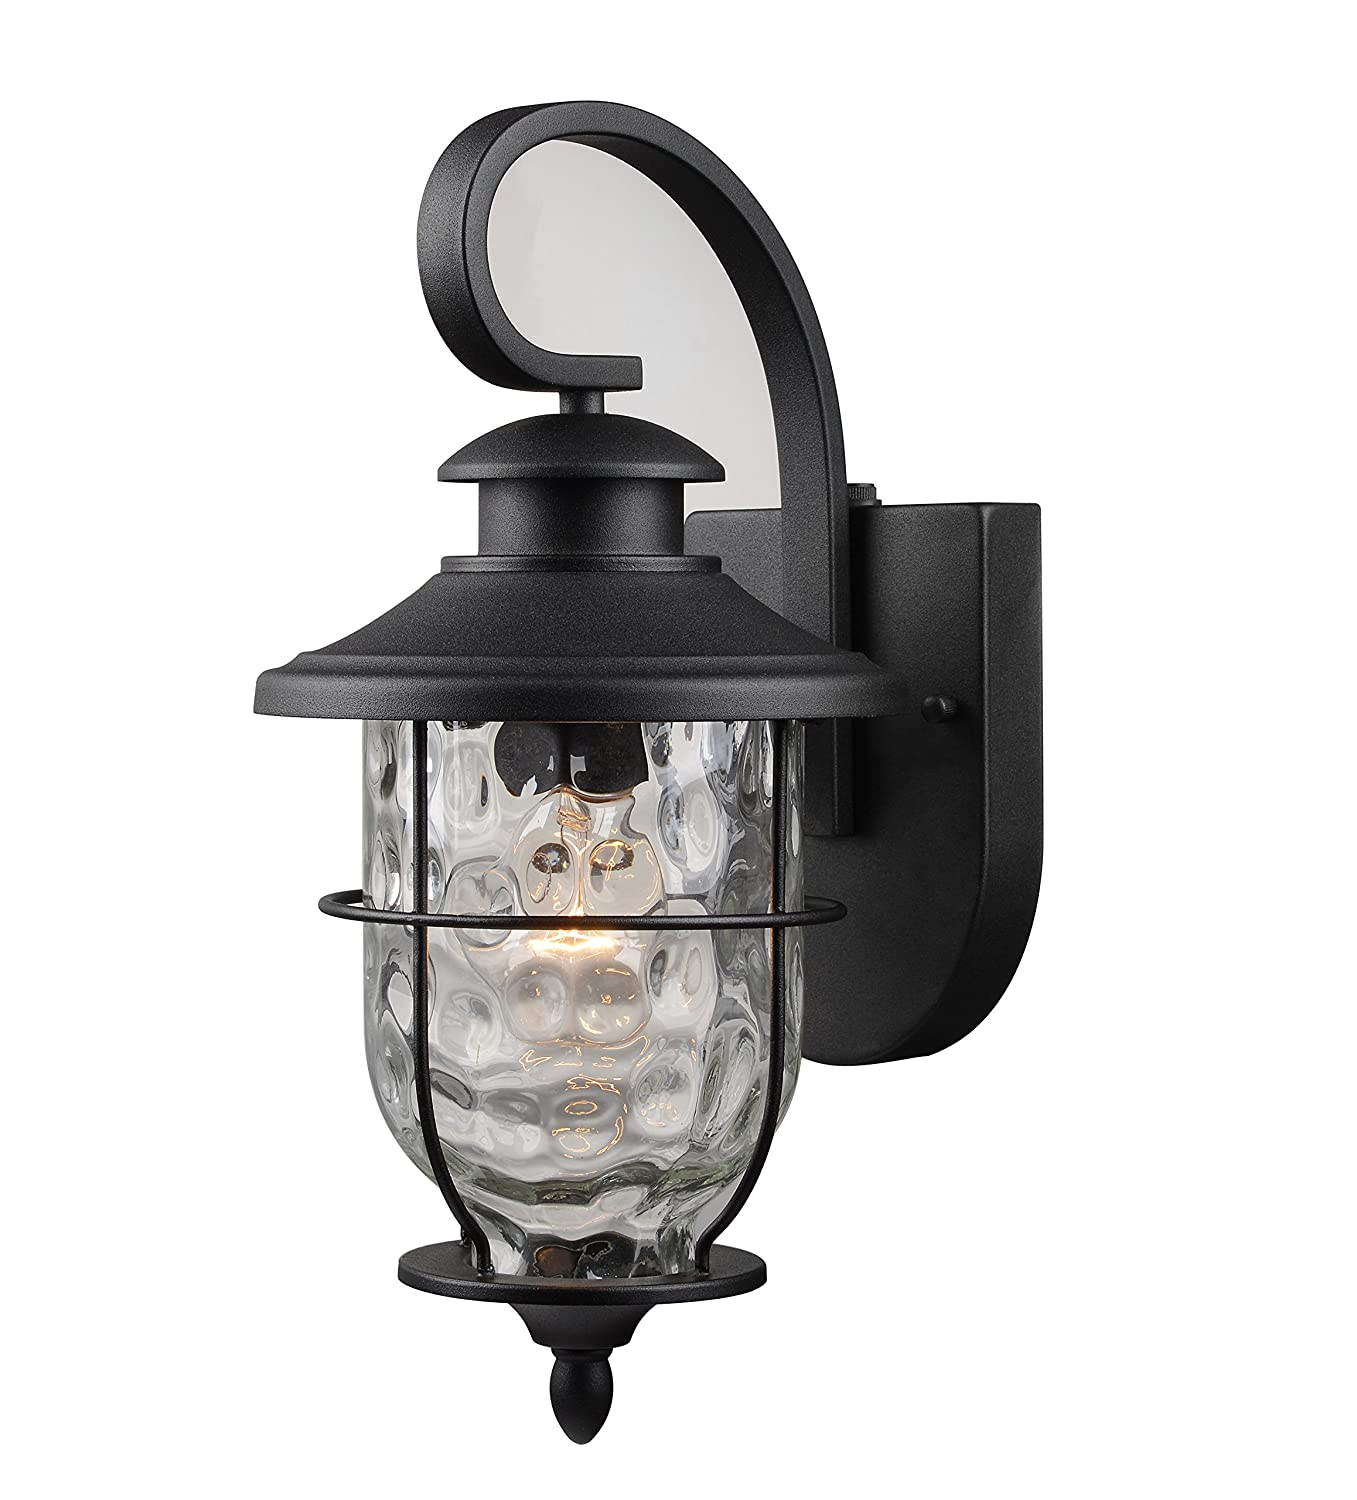 Hardware House LLC 21-2199 # 1-Light Lantern with Photo Cell Black ...